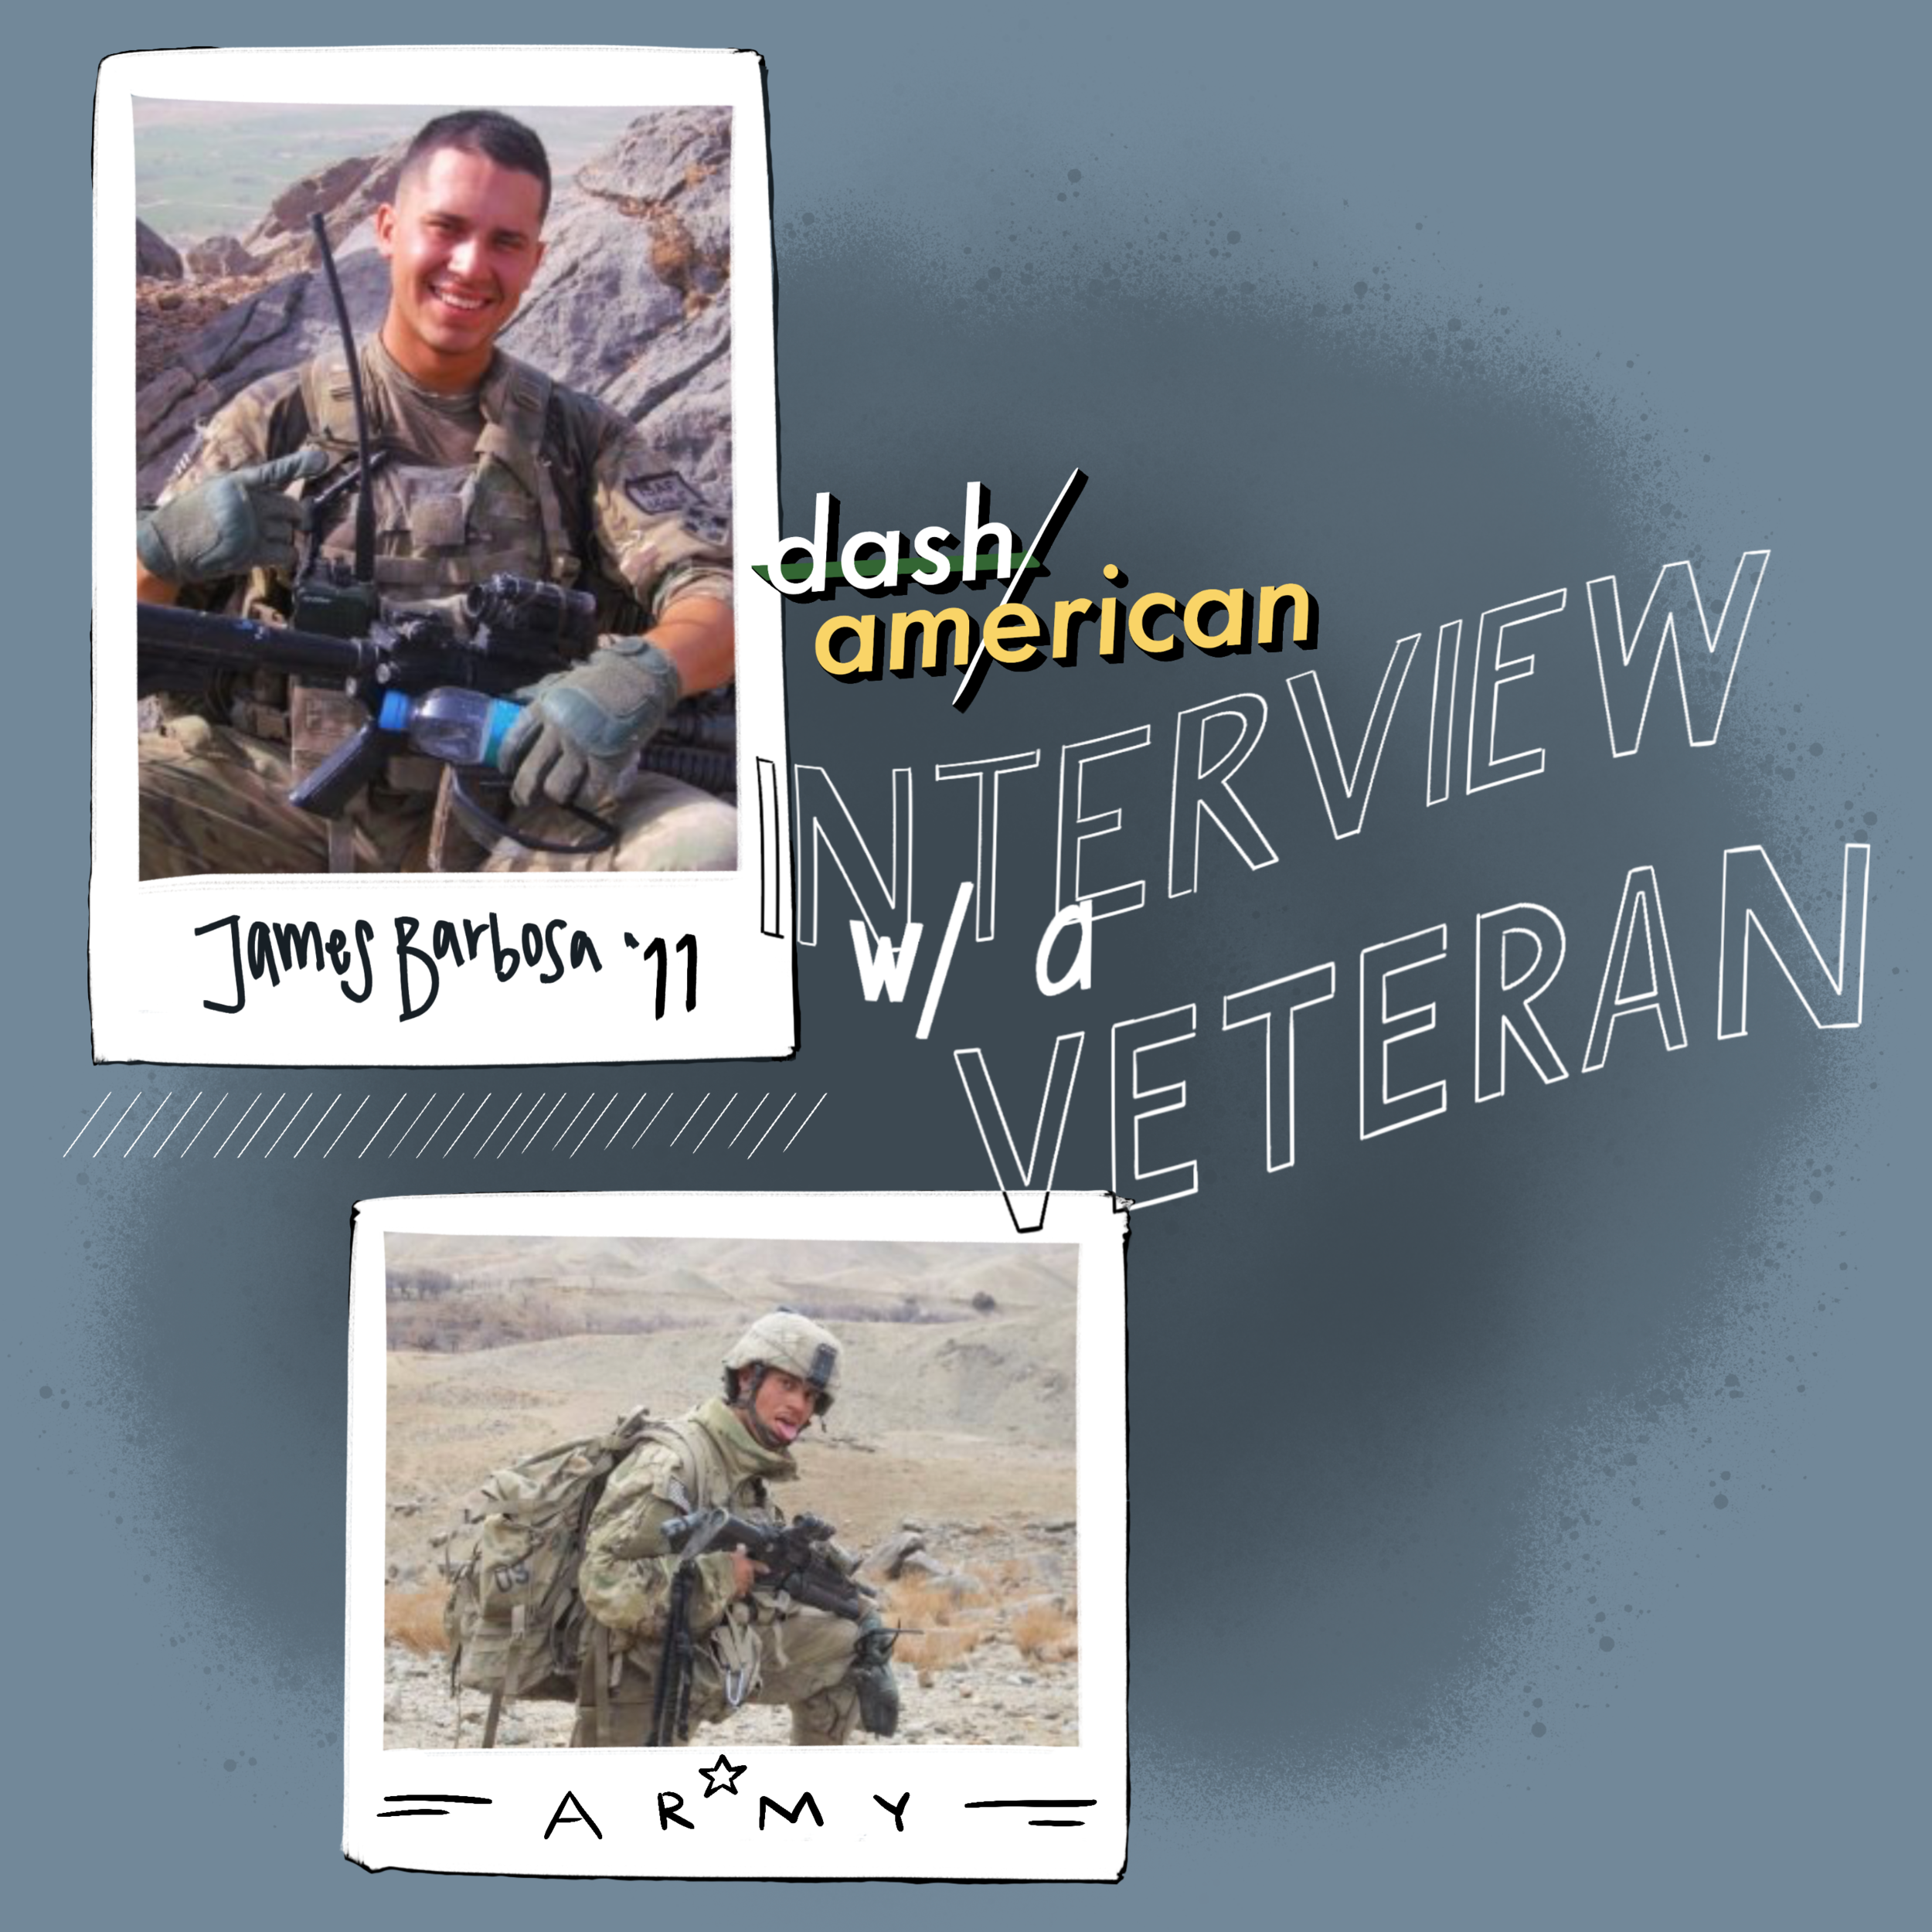 Dash/AmericanThe Veteran Podcast - Dash/American the Podcast with James Barbosa an Army Veteran shedding some light on the experience of being POC in the military; before, during, and after serving.